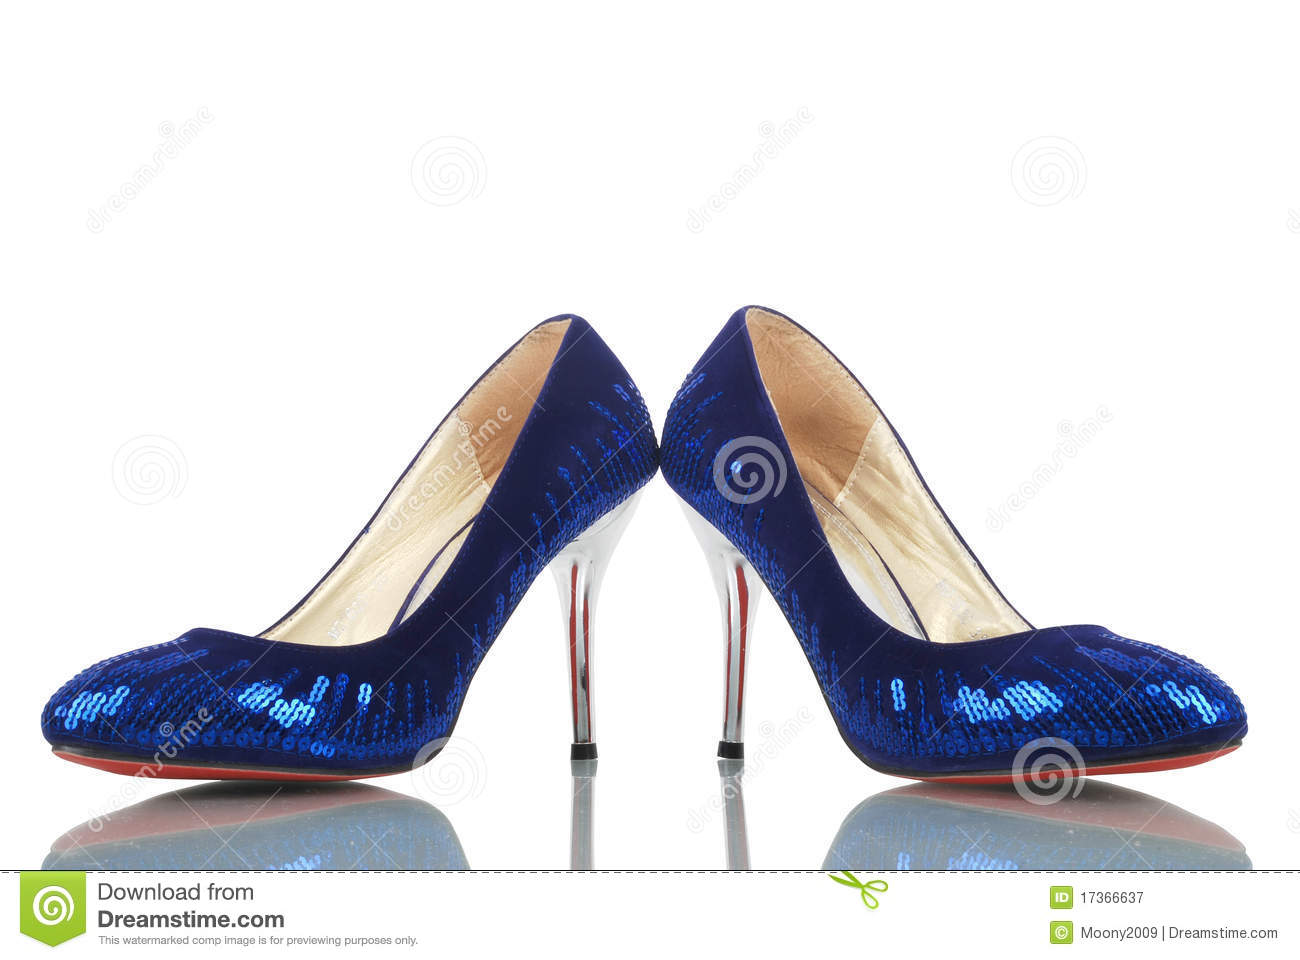 a26c0b12d25 This is a beautiful high heel blue ladies shoes isolated on a white  background.